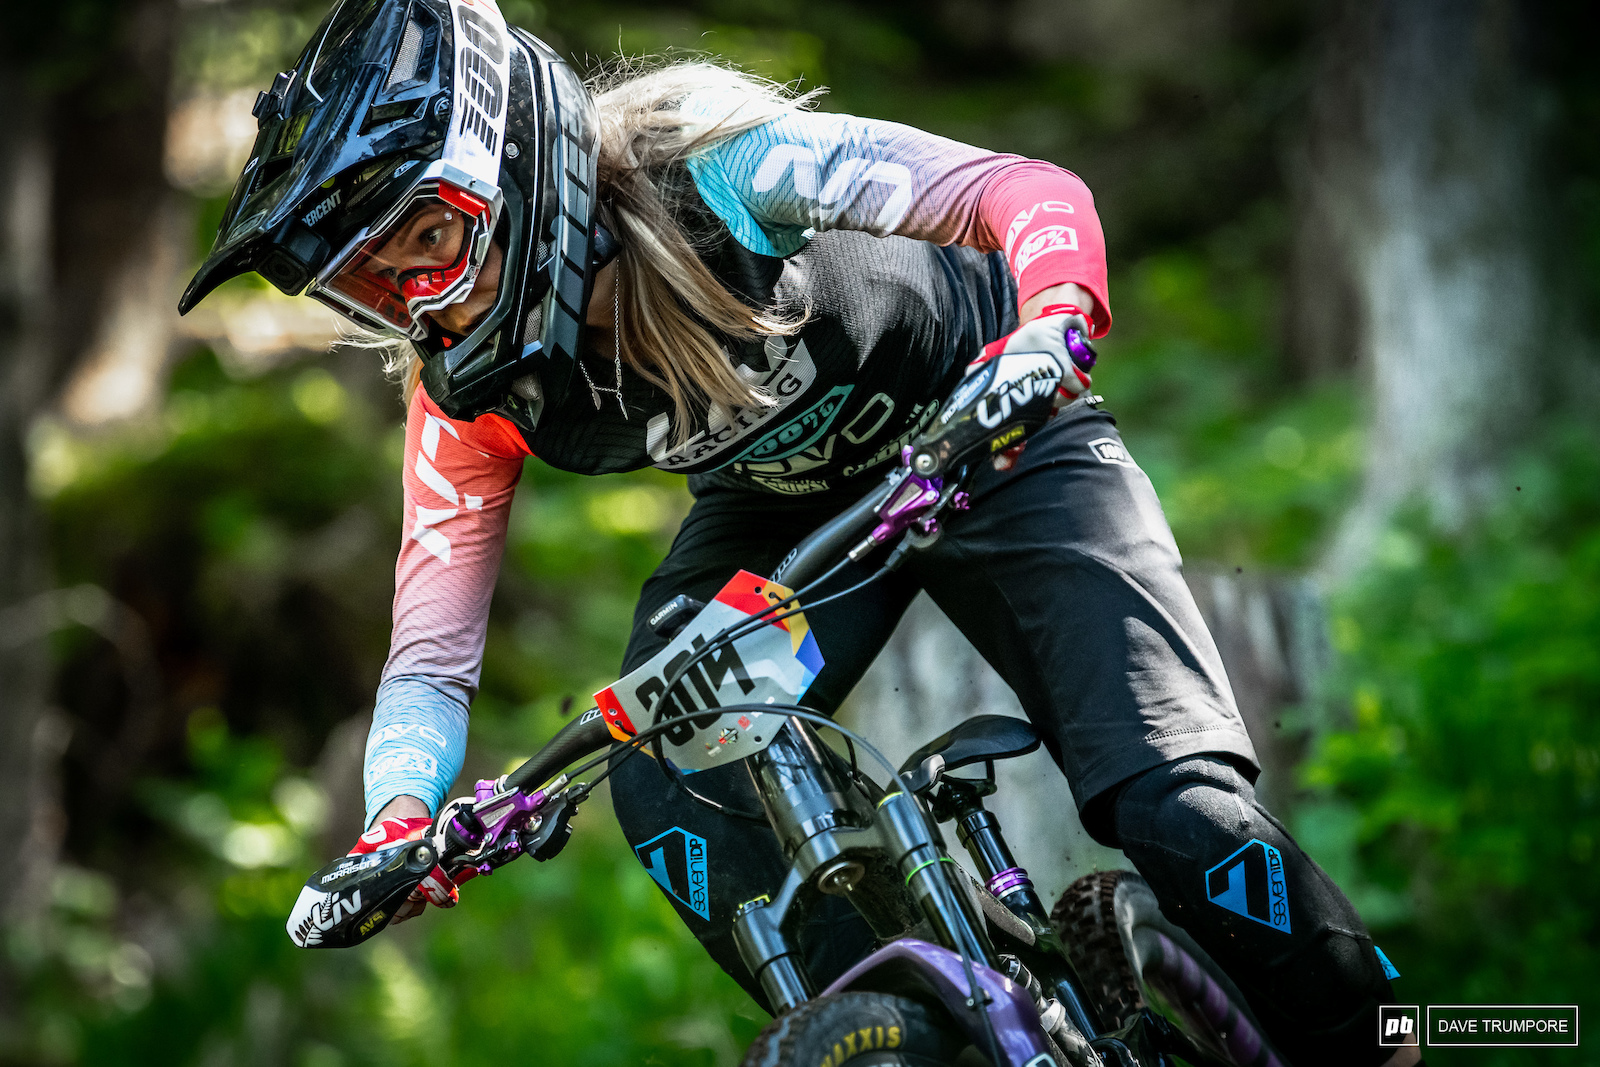 Ree Morrison won a stage in Madeira and if she can find consistency through the day she will be a podium contender.